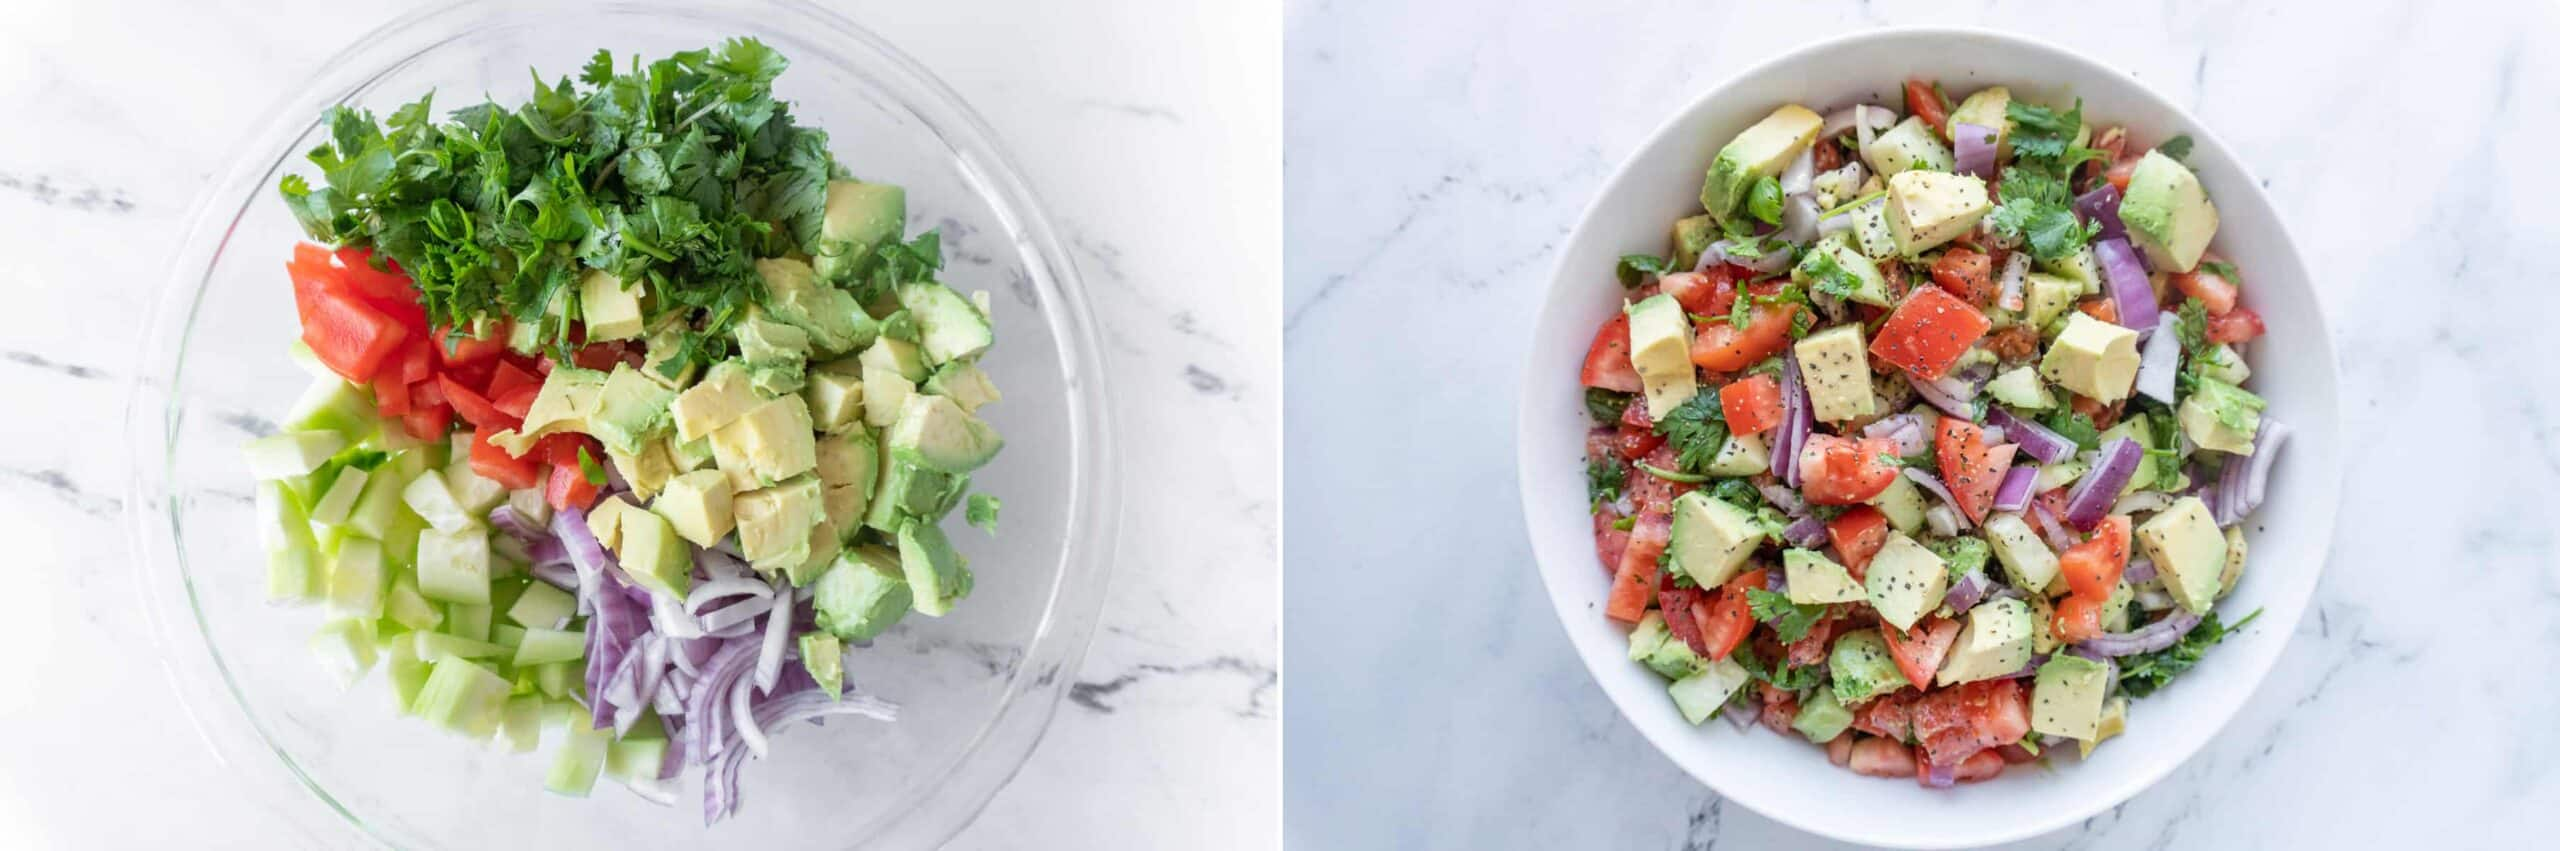 Cucumber Avocado Salad before and after mixing